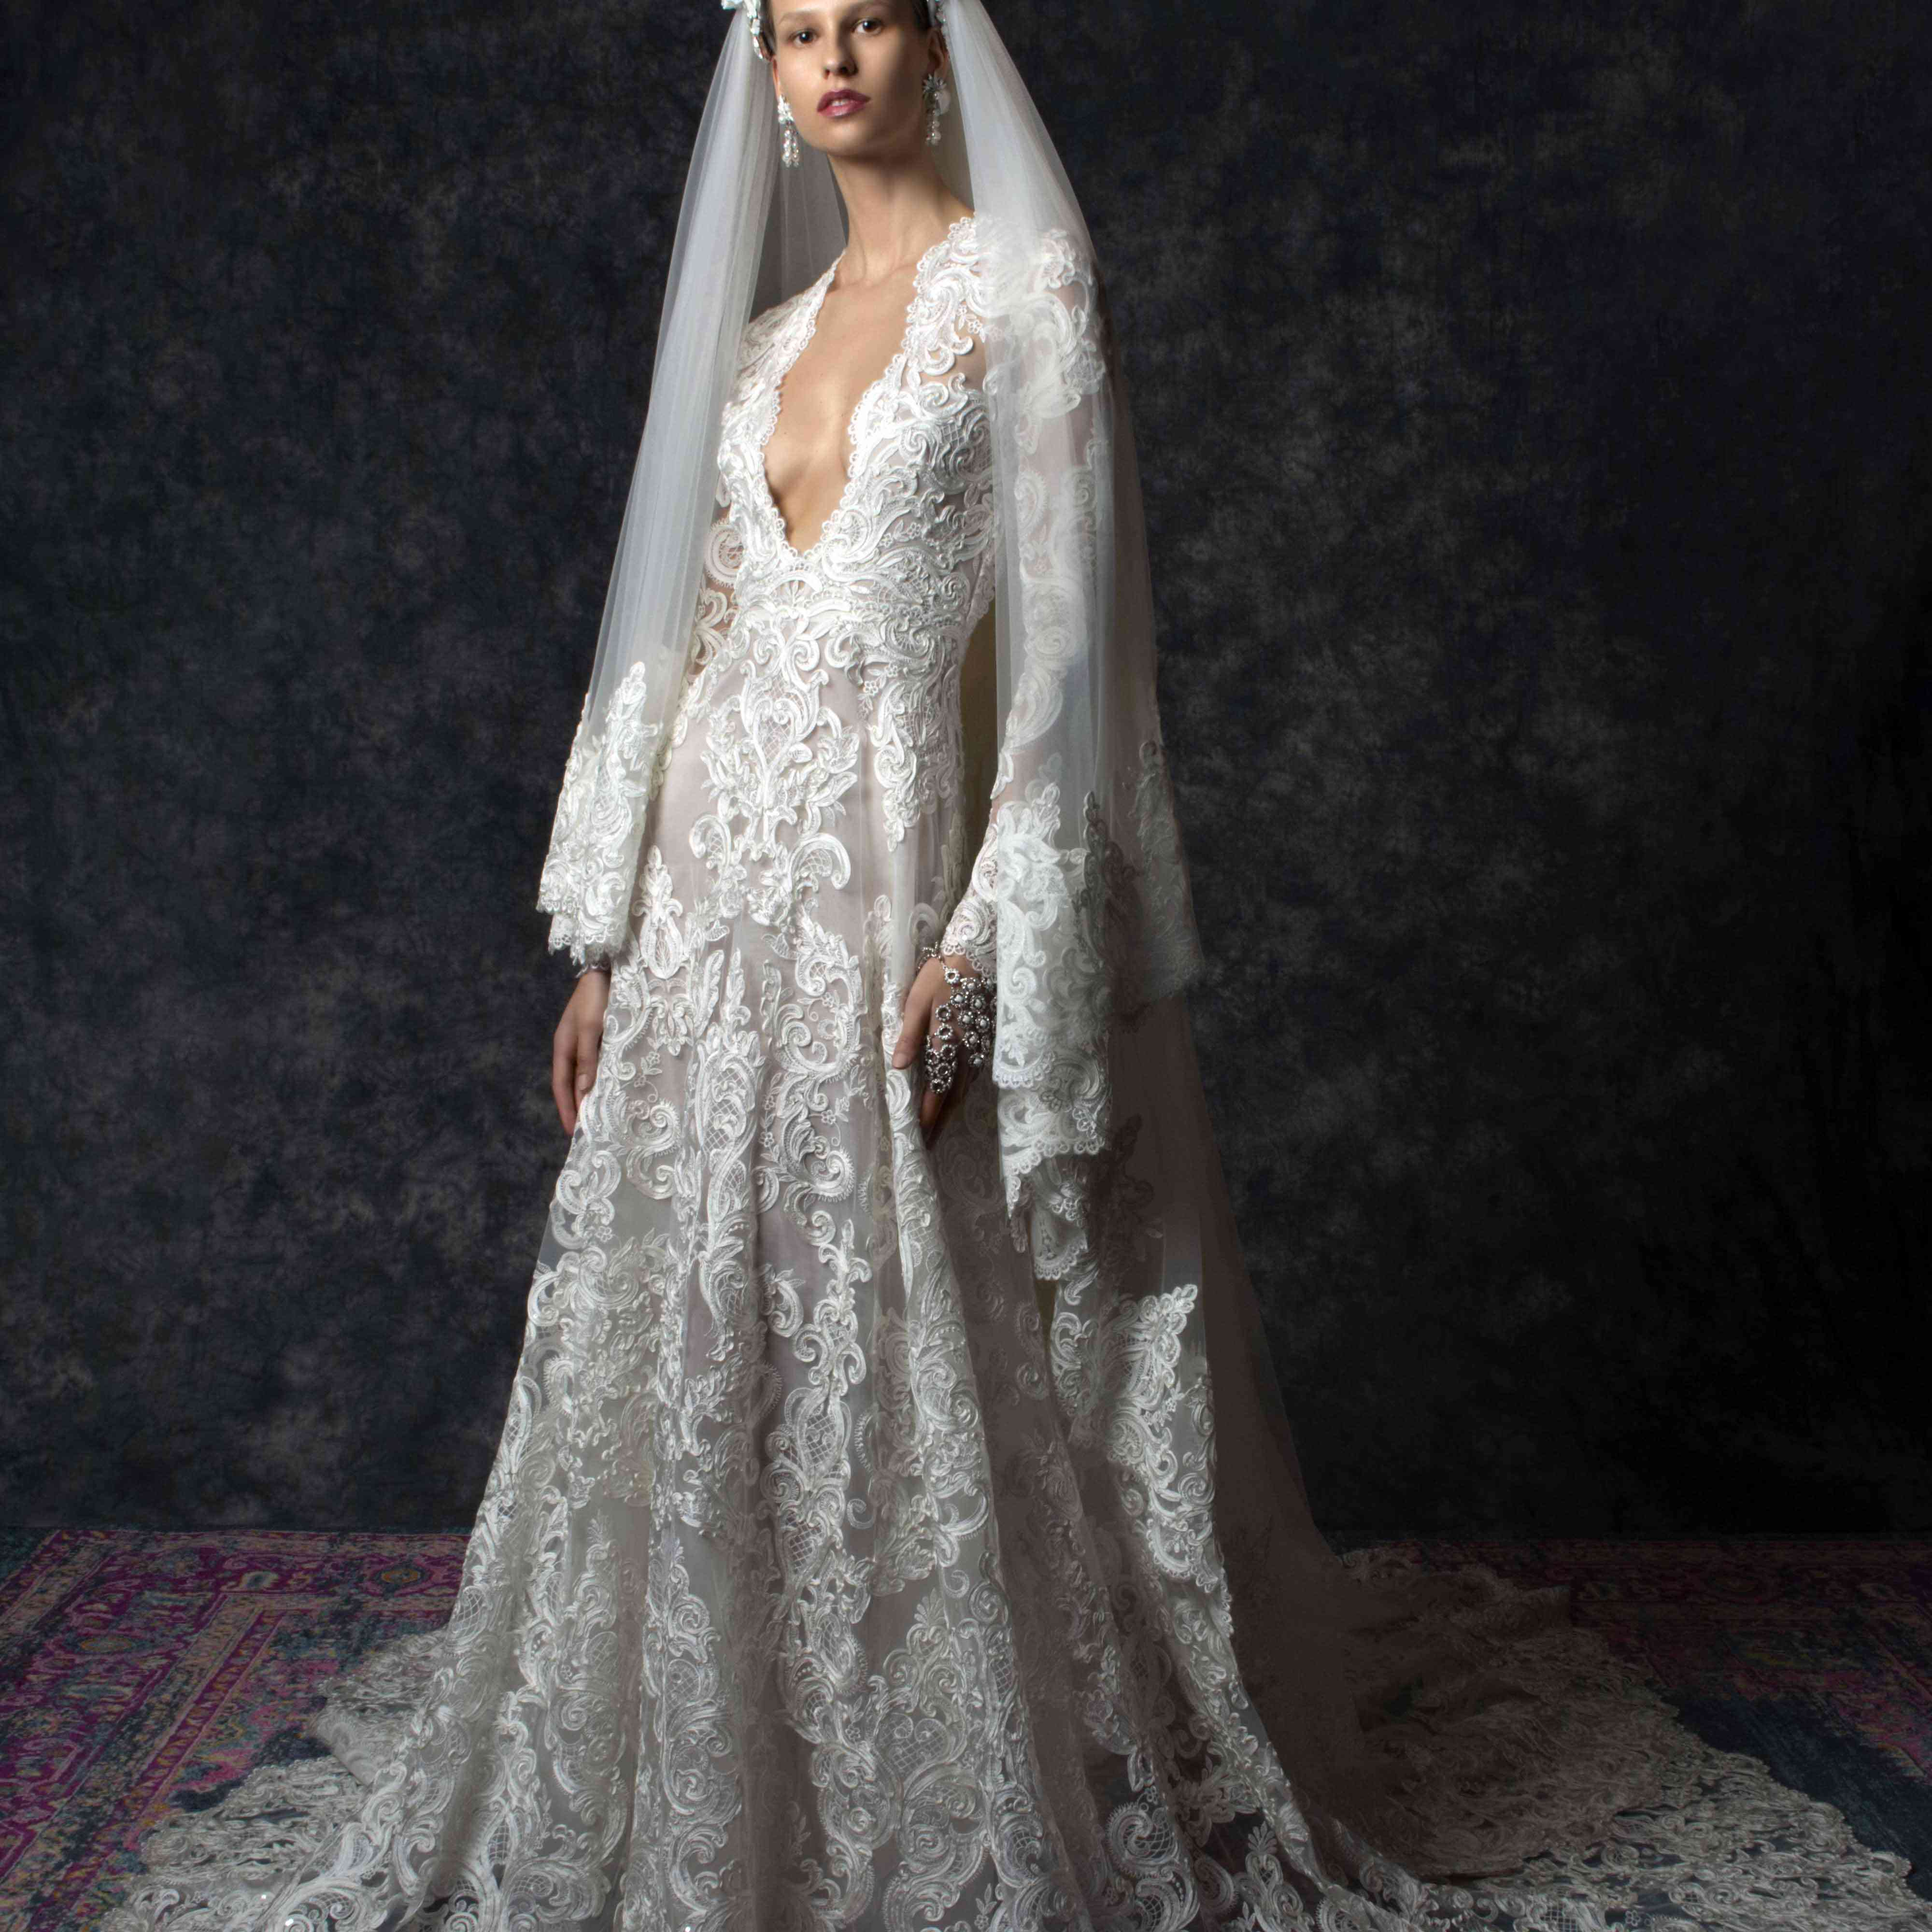 Model in long-sleeve floral gown with plunging neckline